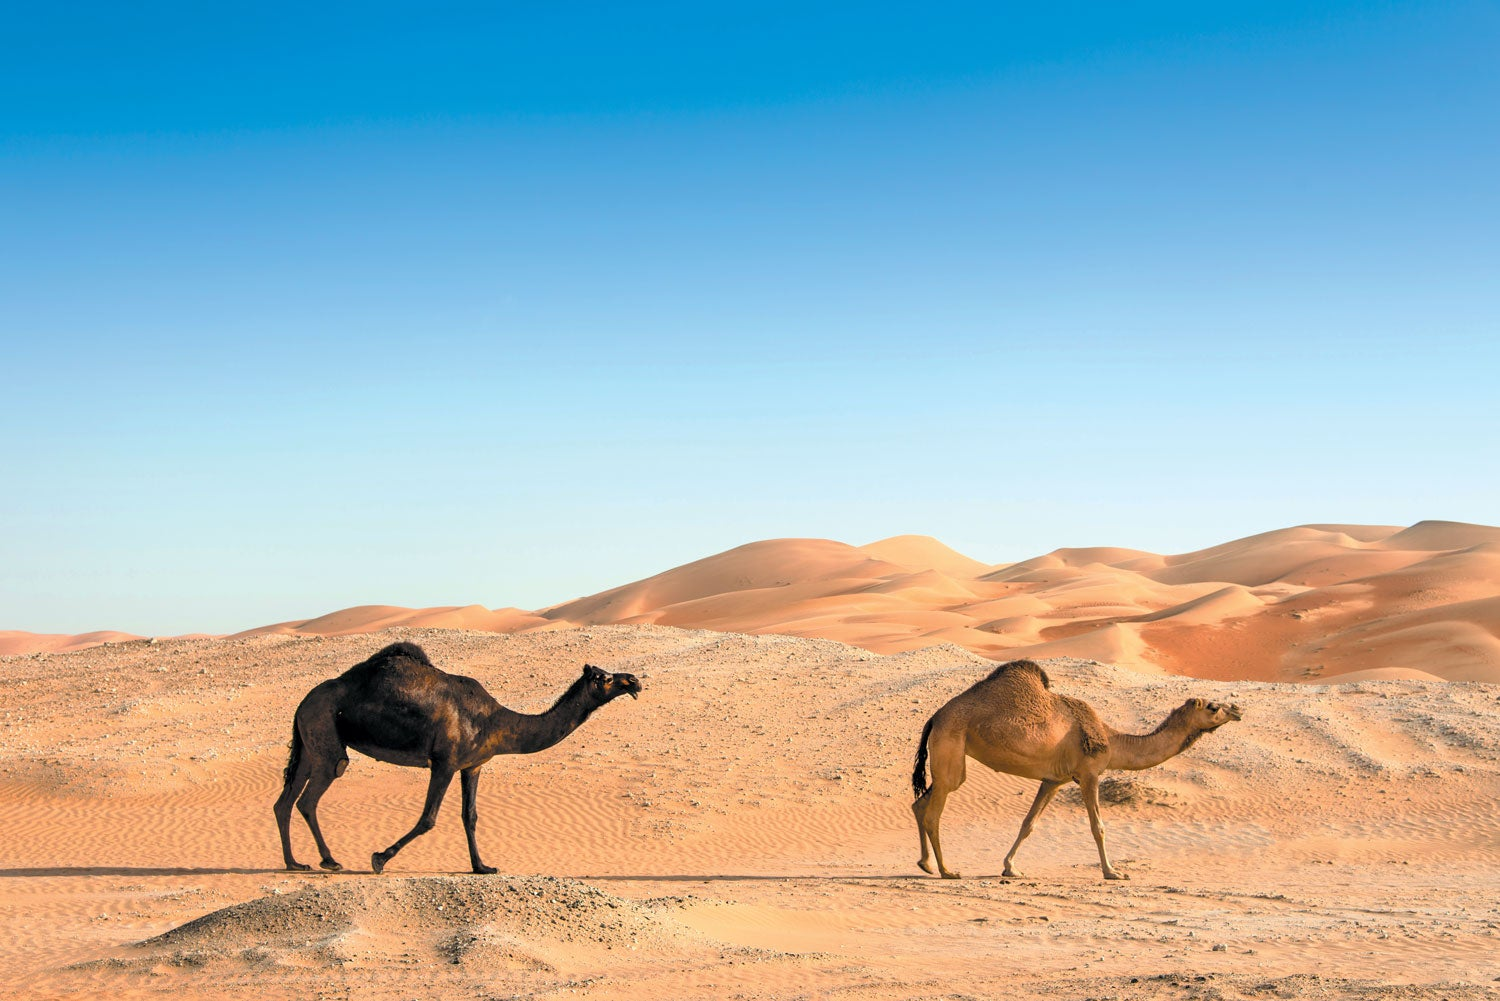 Two camels walking in the desert.